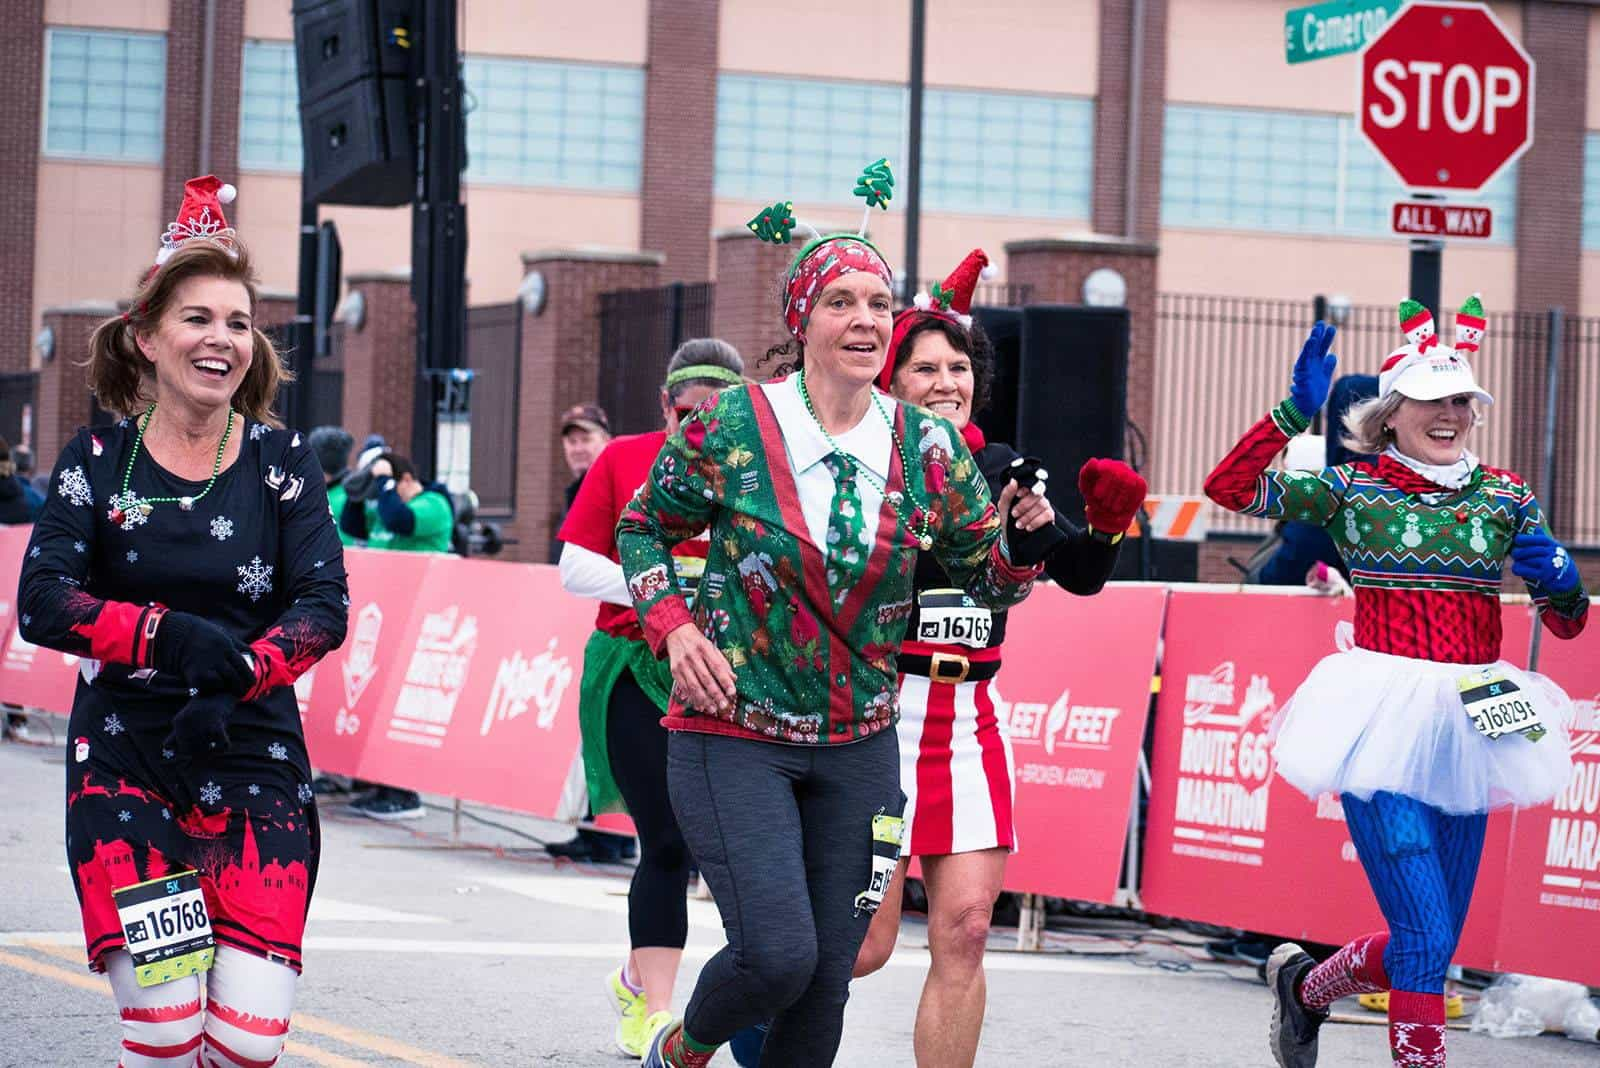 Give a gift registration and get yourself a running partner in the process!